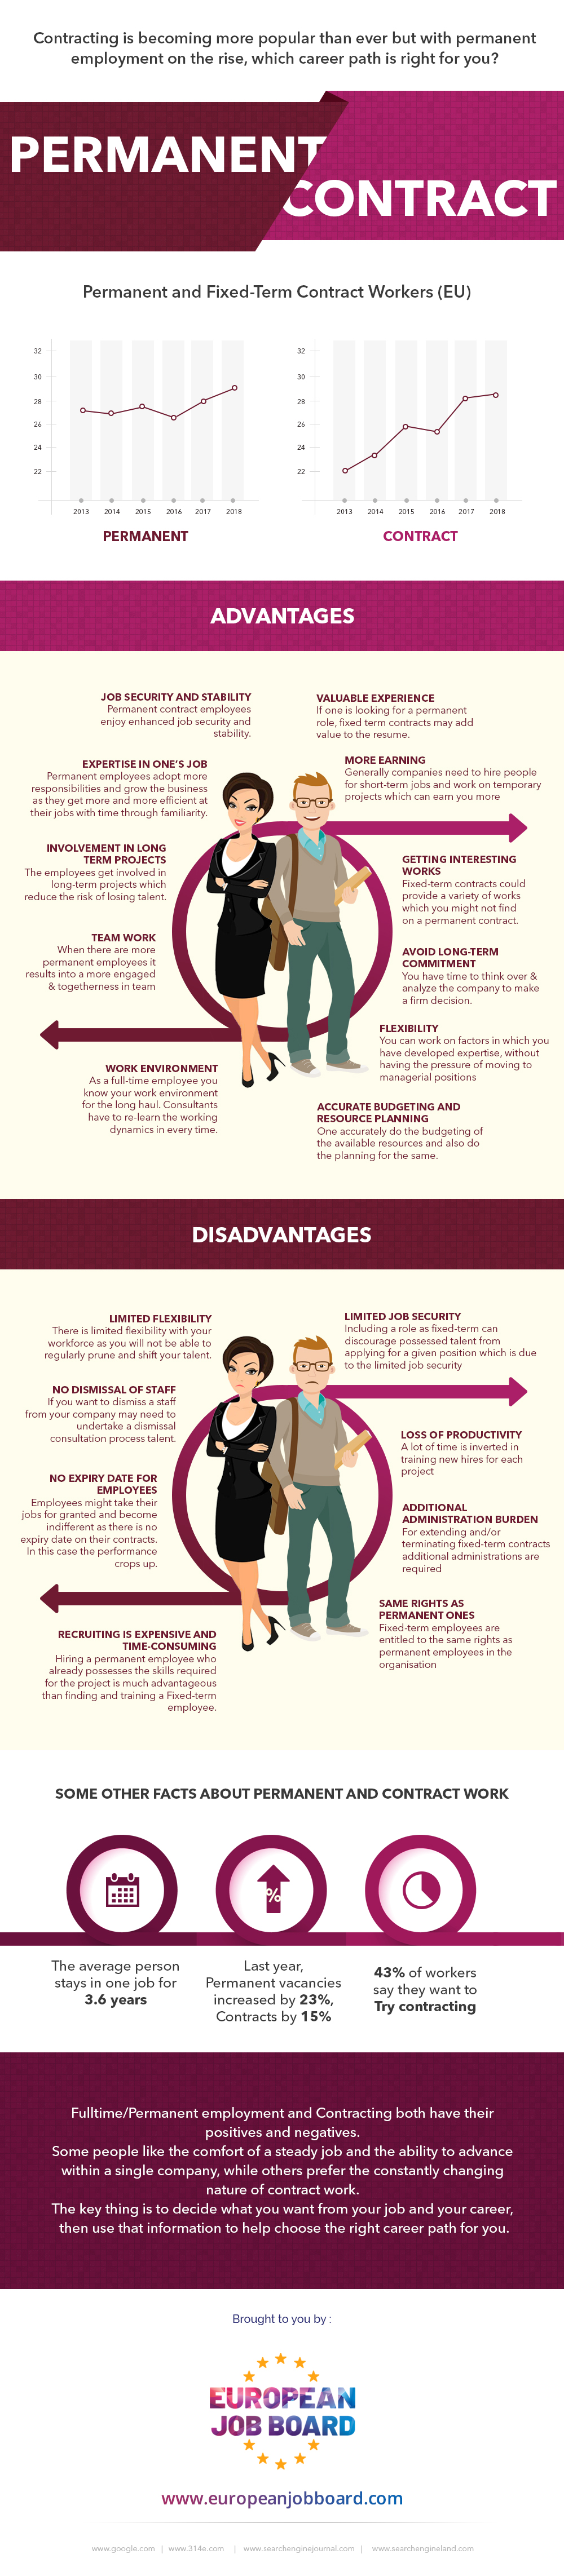 Choosing Between Fixed-Term and Permanent Contracts Job Offers- Infographic